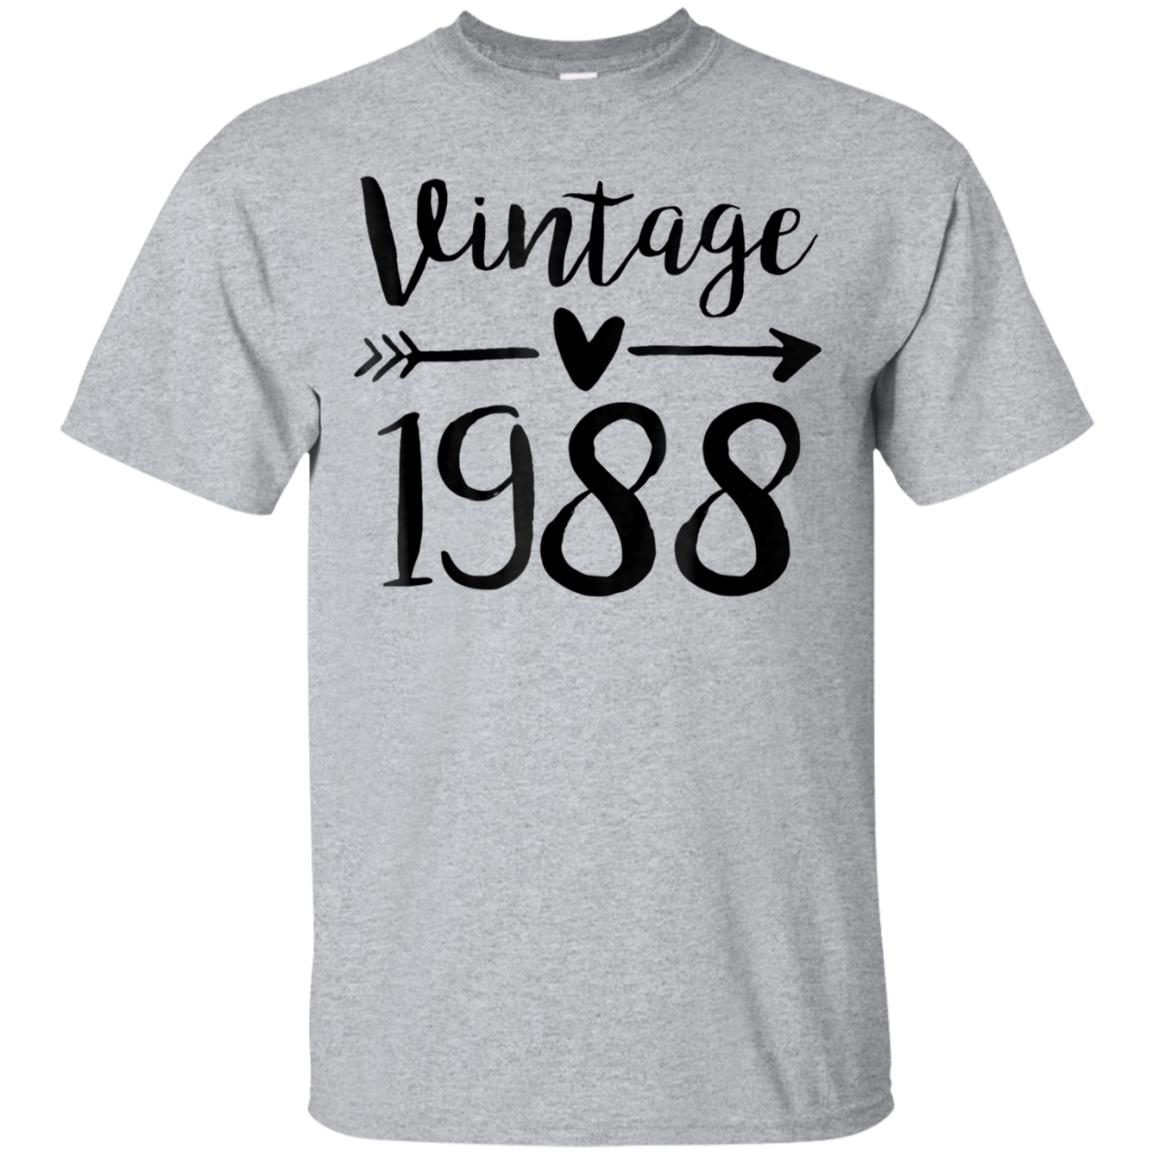 Awesome Vintage 1988 Cute Birthday Women Gift 30th Shirt